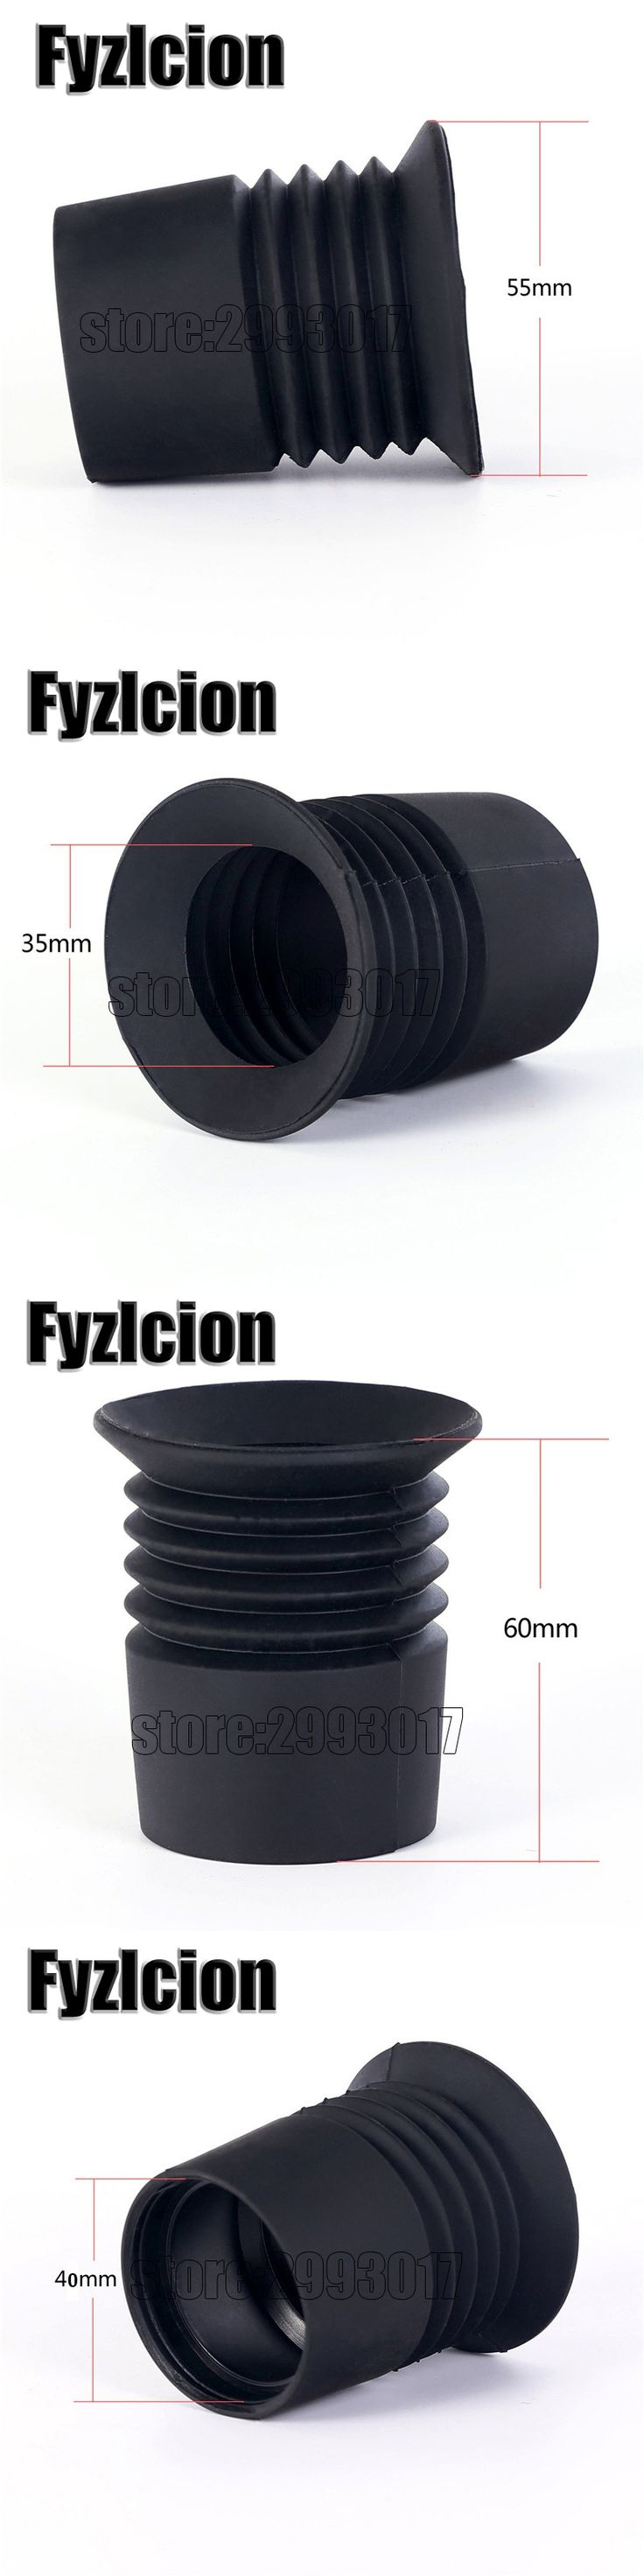 Fyzlcion Rubber Scalability Sight 40mm Diameter Rifle Scope Recoil Eye Protector Eyeshade Hunting Scope Accessories